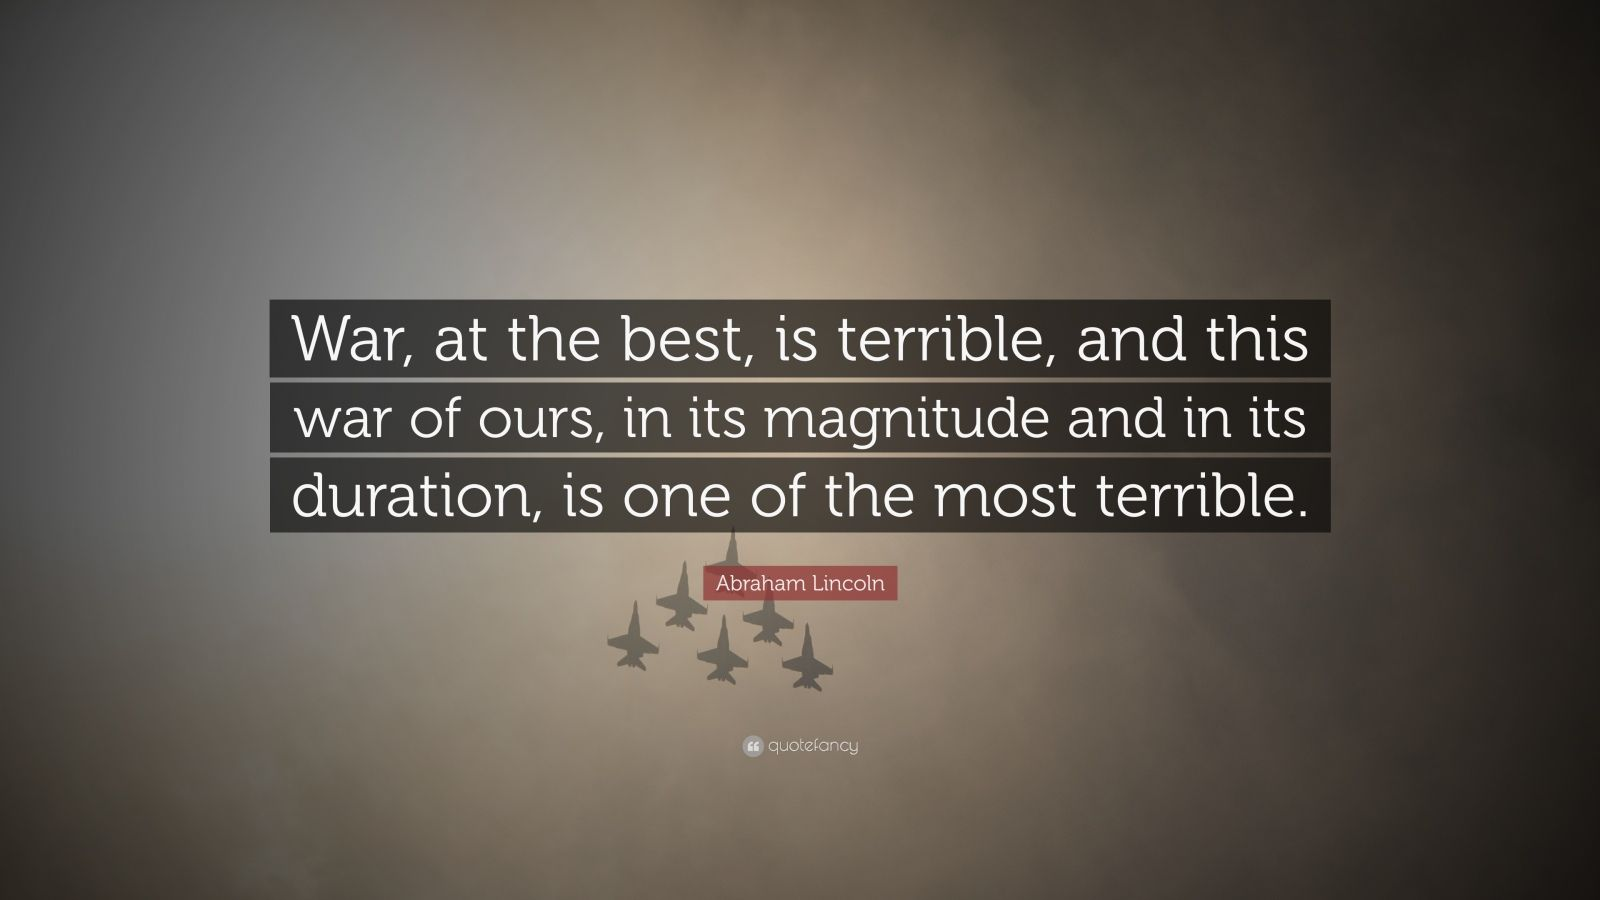 """Abraham Lincoln Quote: """"War, at the best, is terrible, and this war of ours, in its magnitude and in its duration, is one of the most terrible."""""""